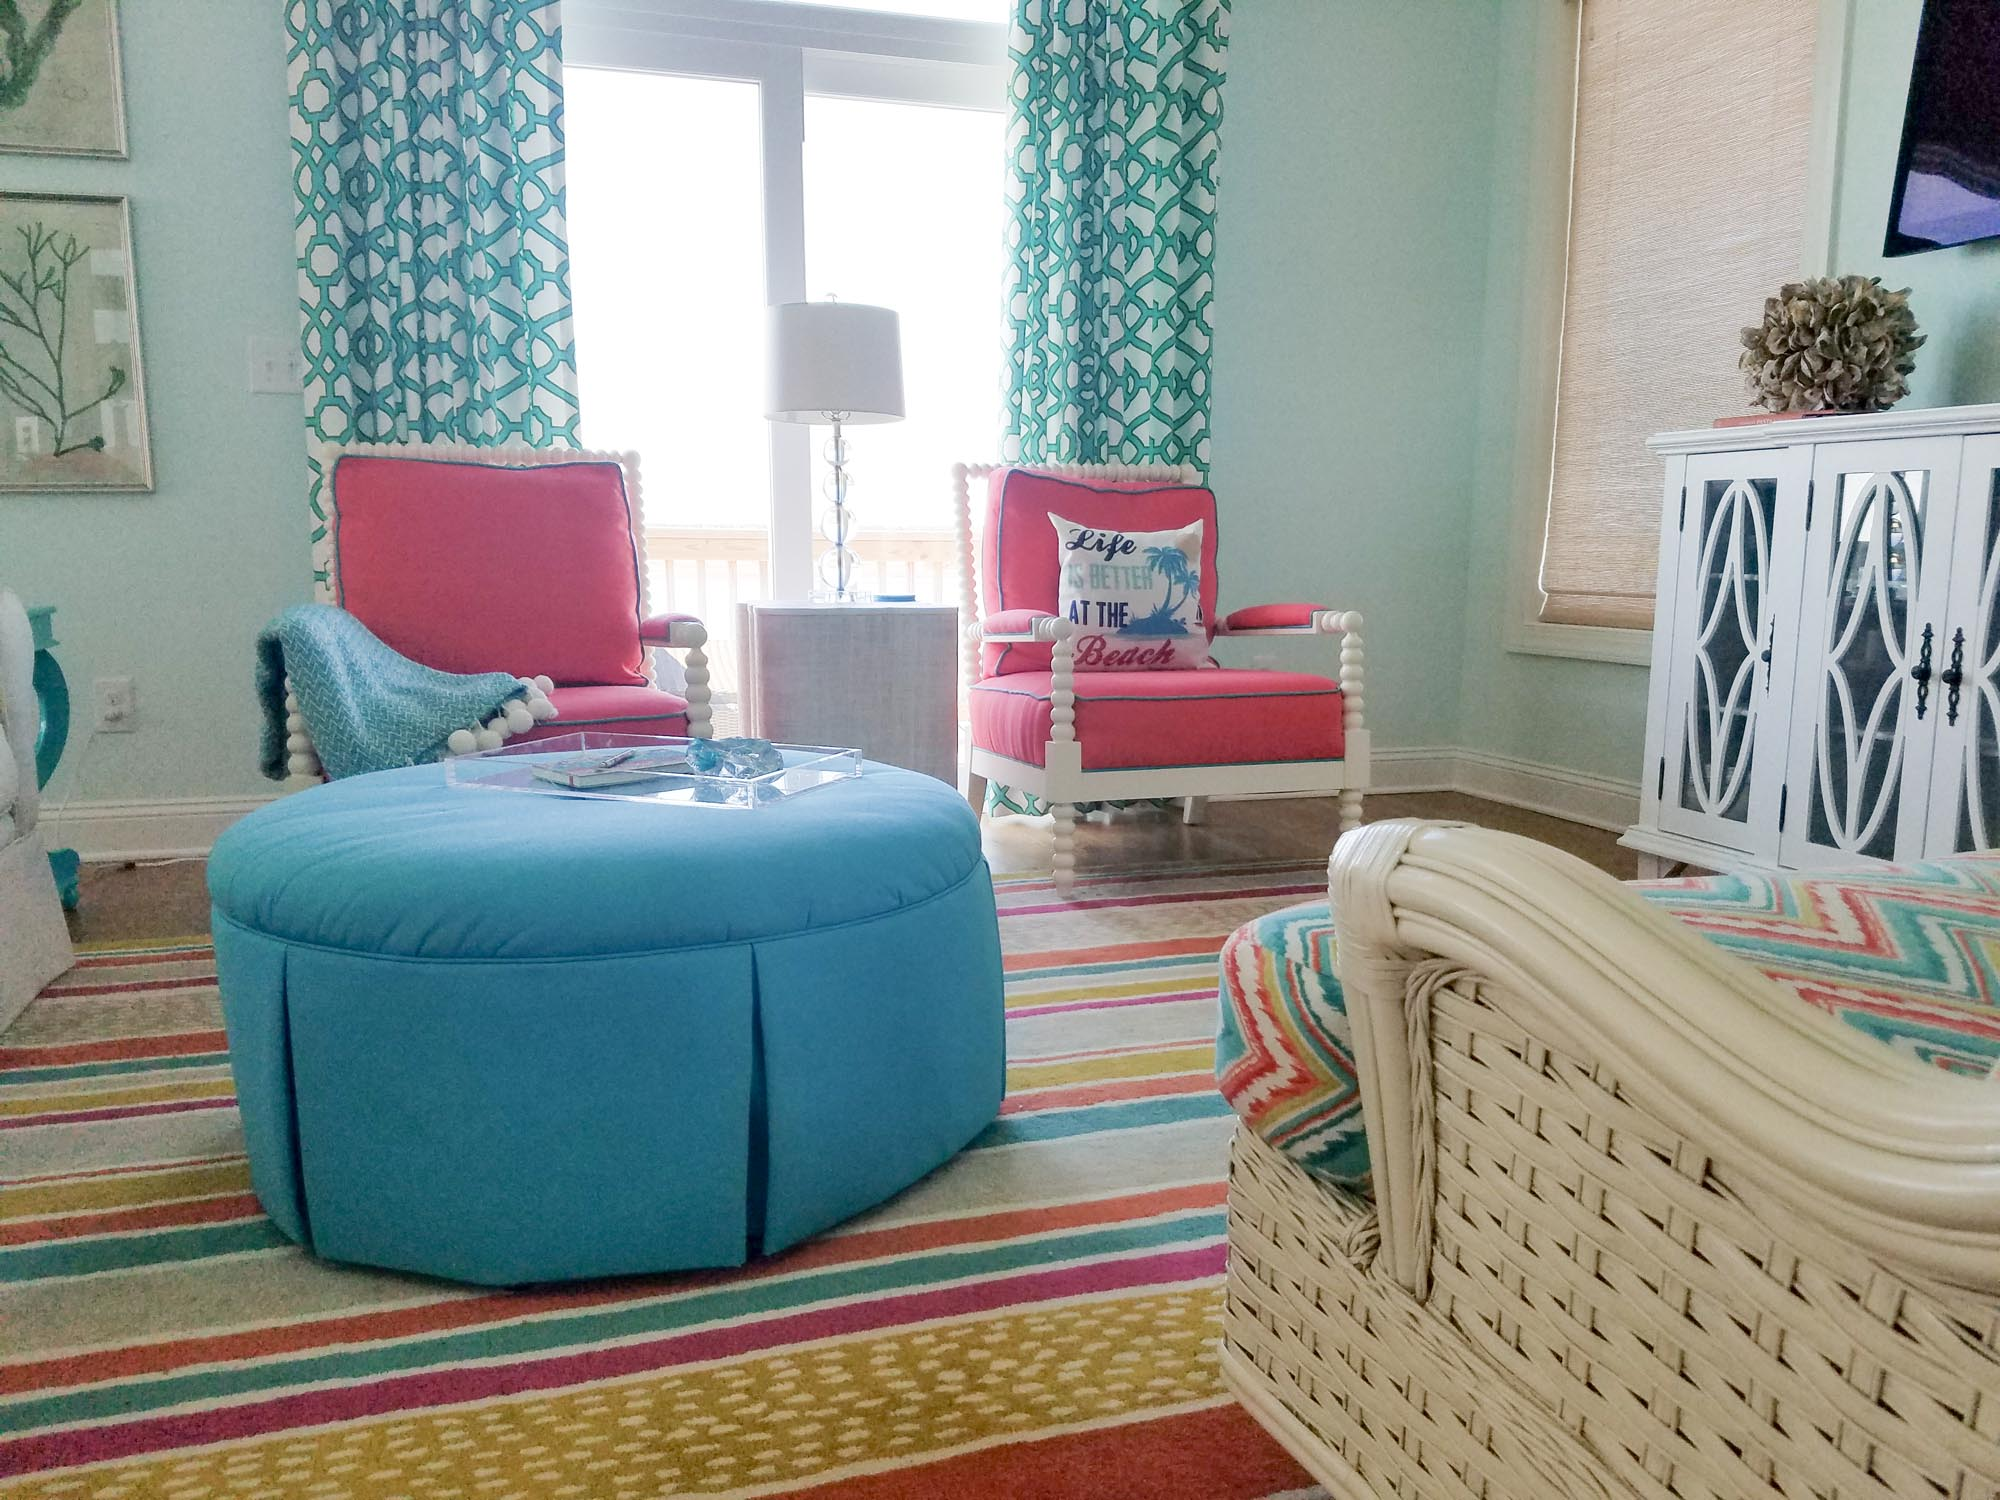 Living room with colored striped rug